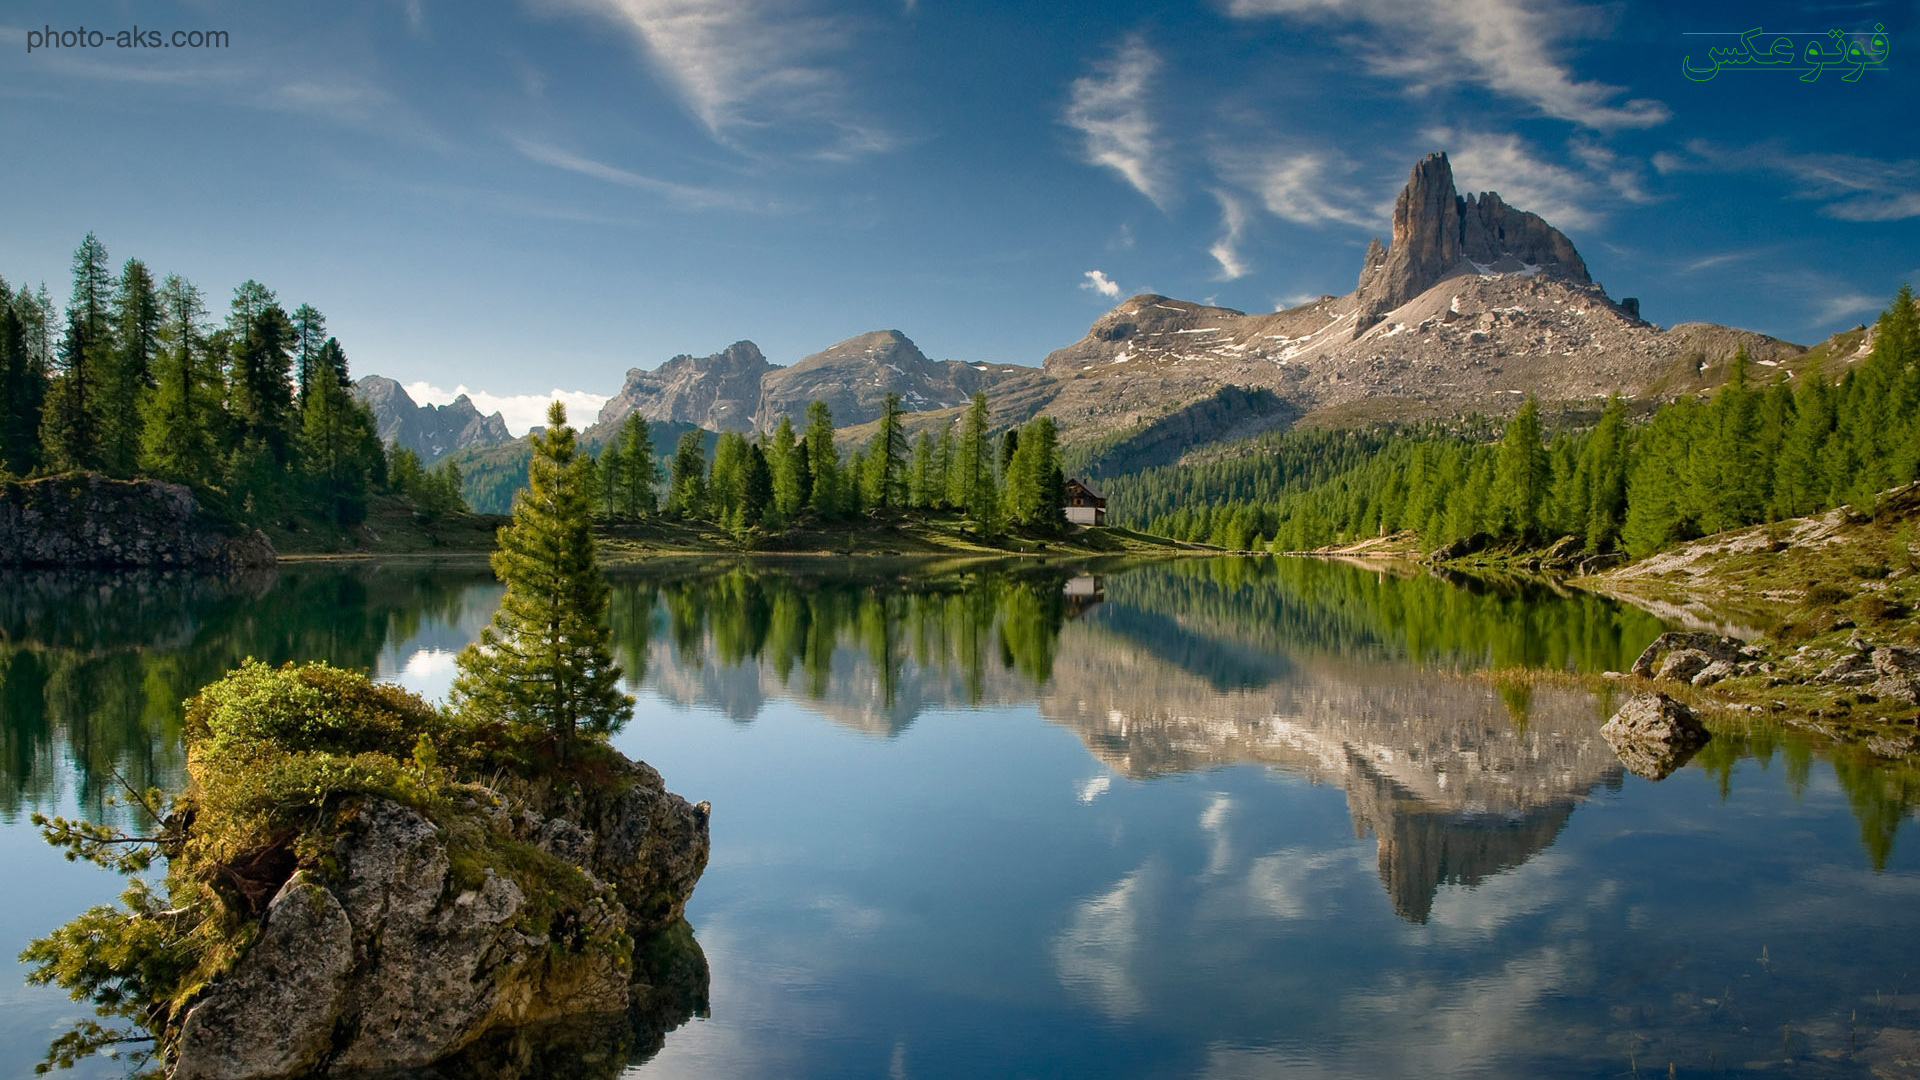 http://pic.photo-aks.com/photo/nature/landscape/large/mountain-lake-and-trees.jpg